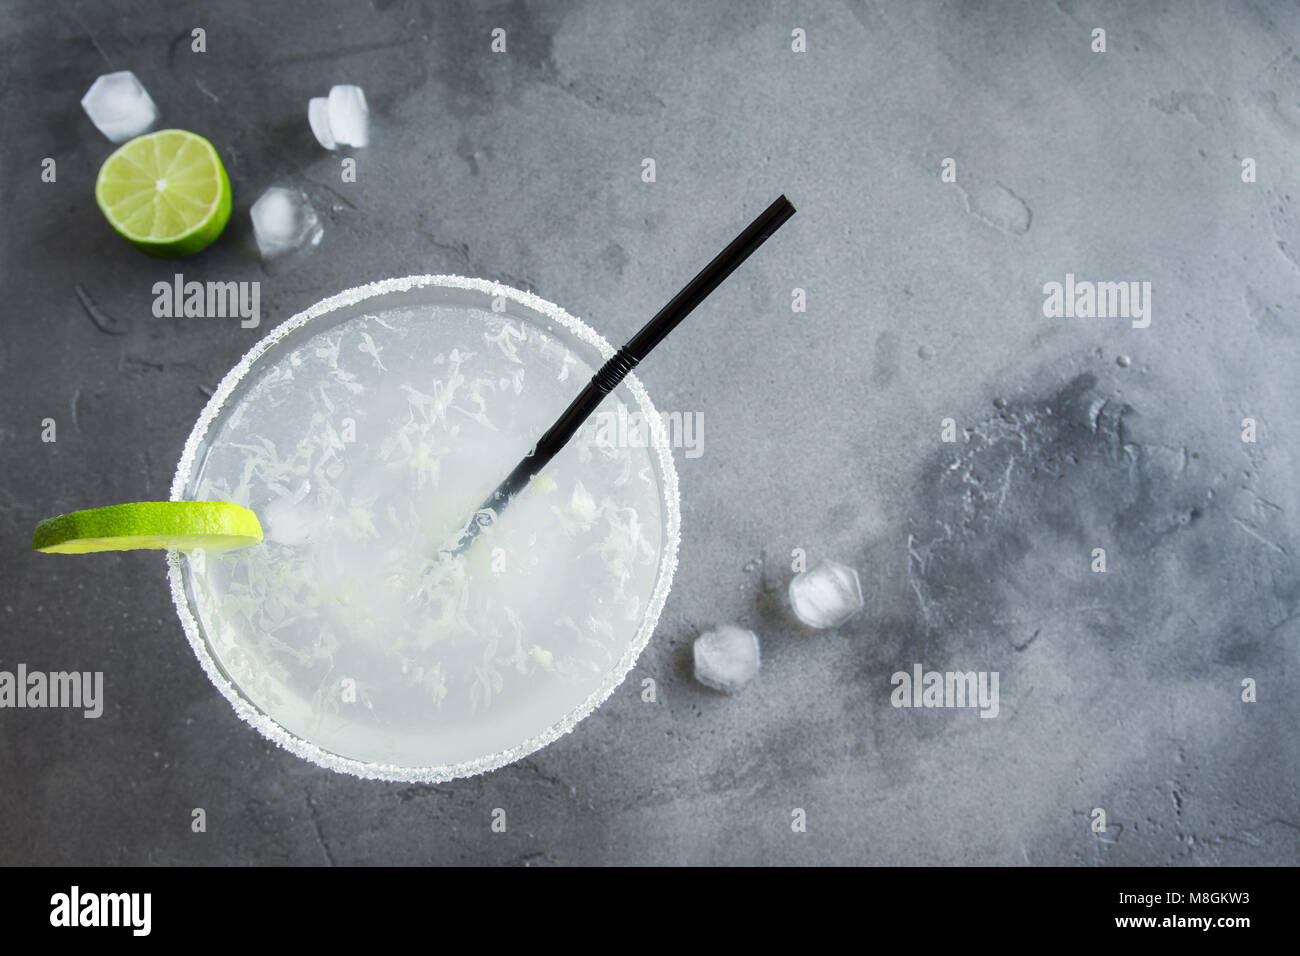 Margarita Сocktail with lime and ice on grey concrete background, copy space. Classic Margarita or Daiquiry Cocktail. - Stock Image